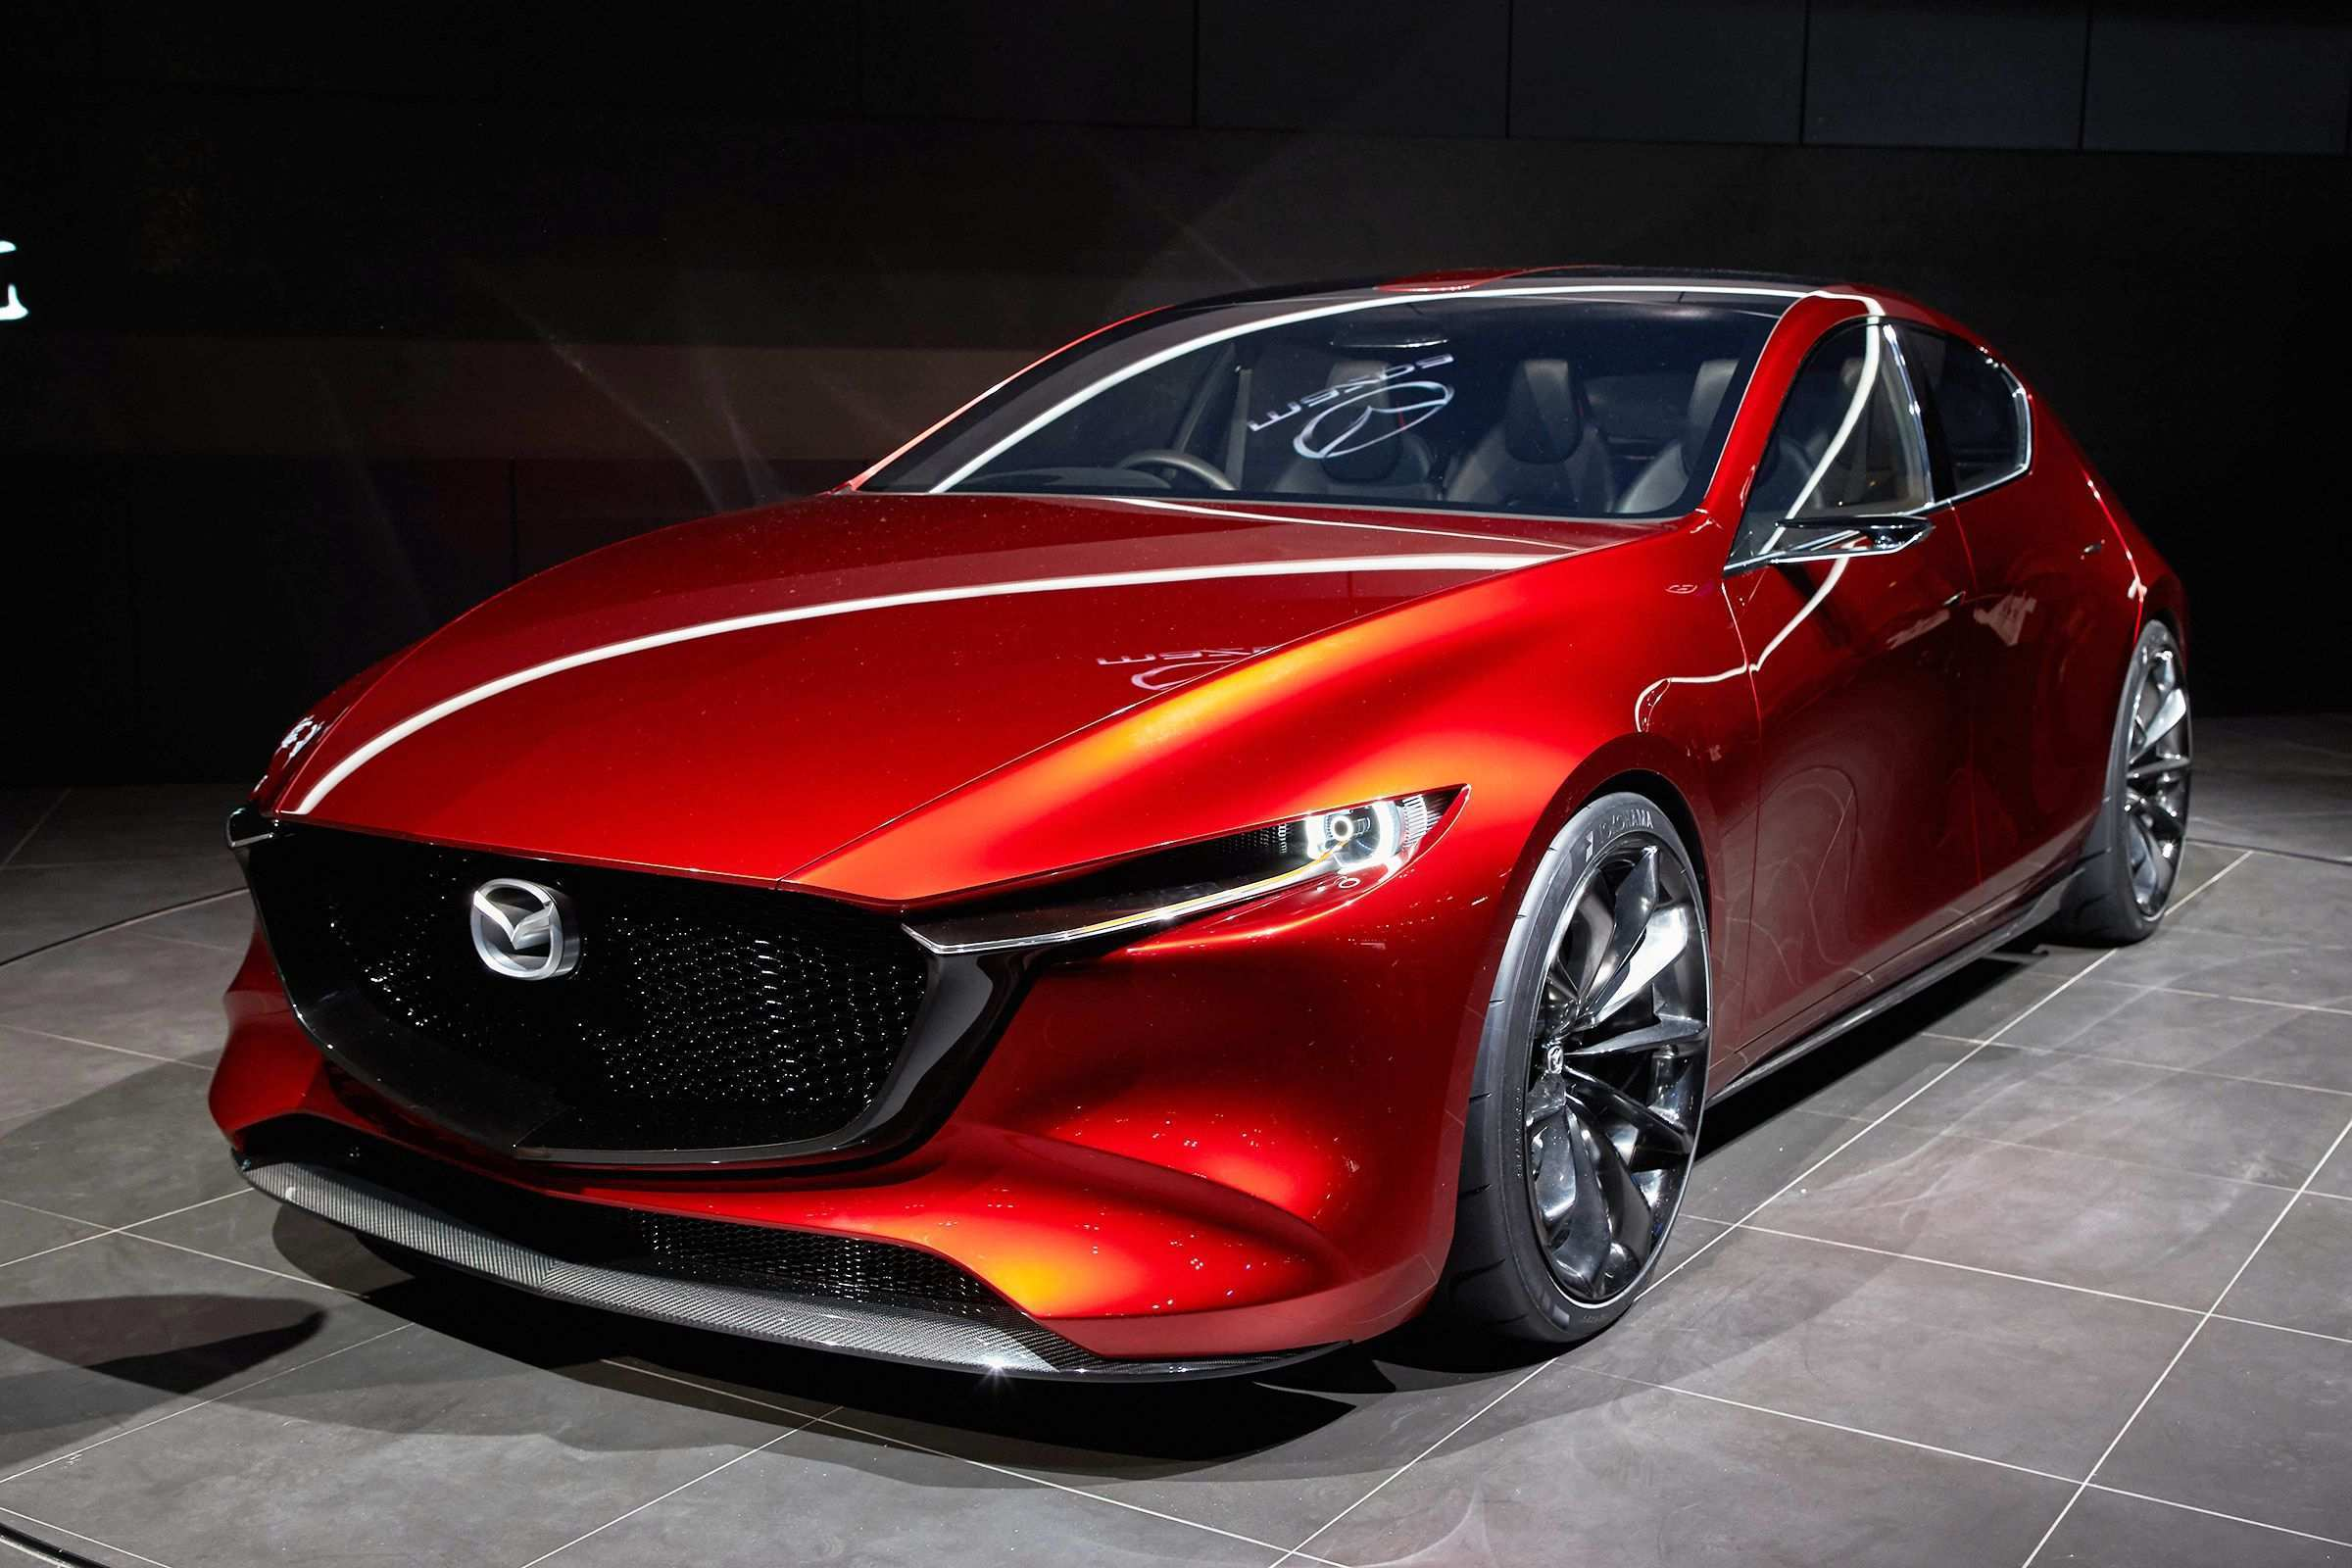 53 Gallery of Mazda 3 2020 New Concept Overview for Mazda 3 2020 New Concept